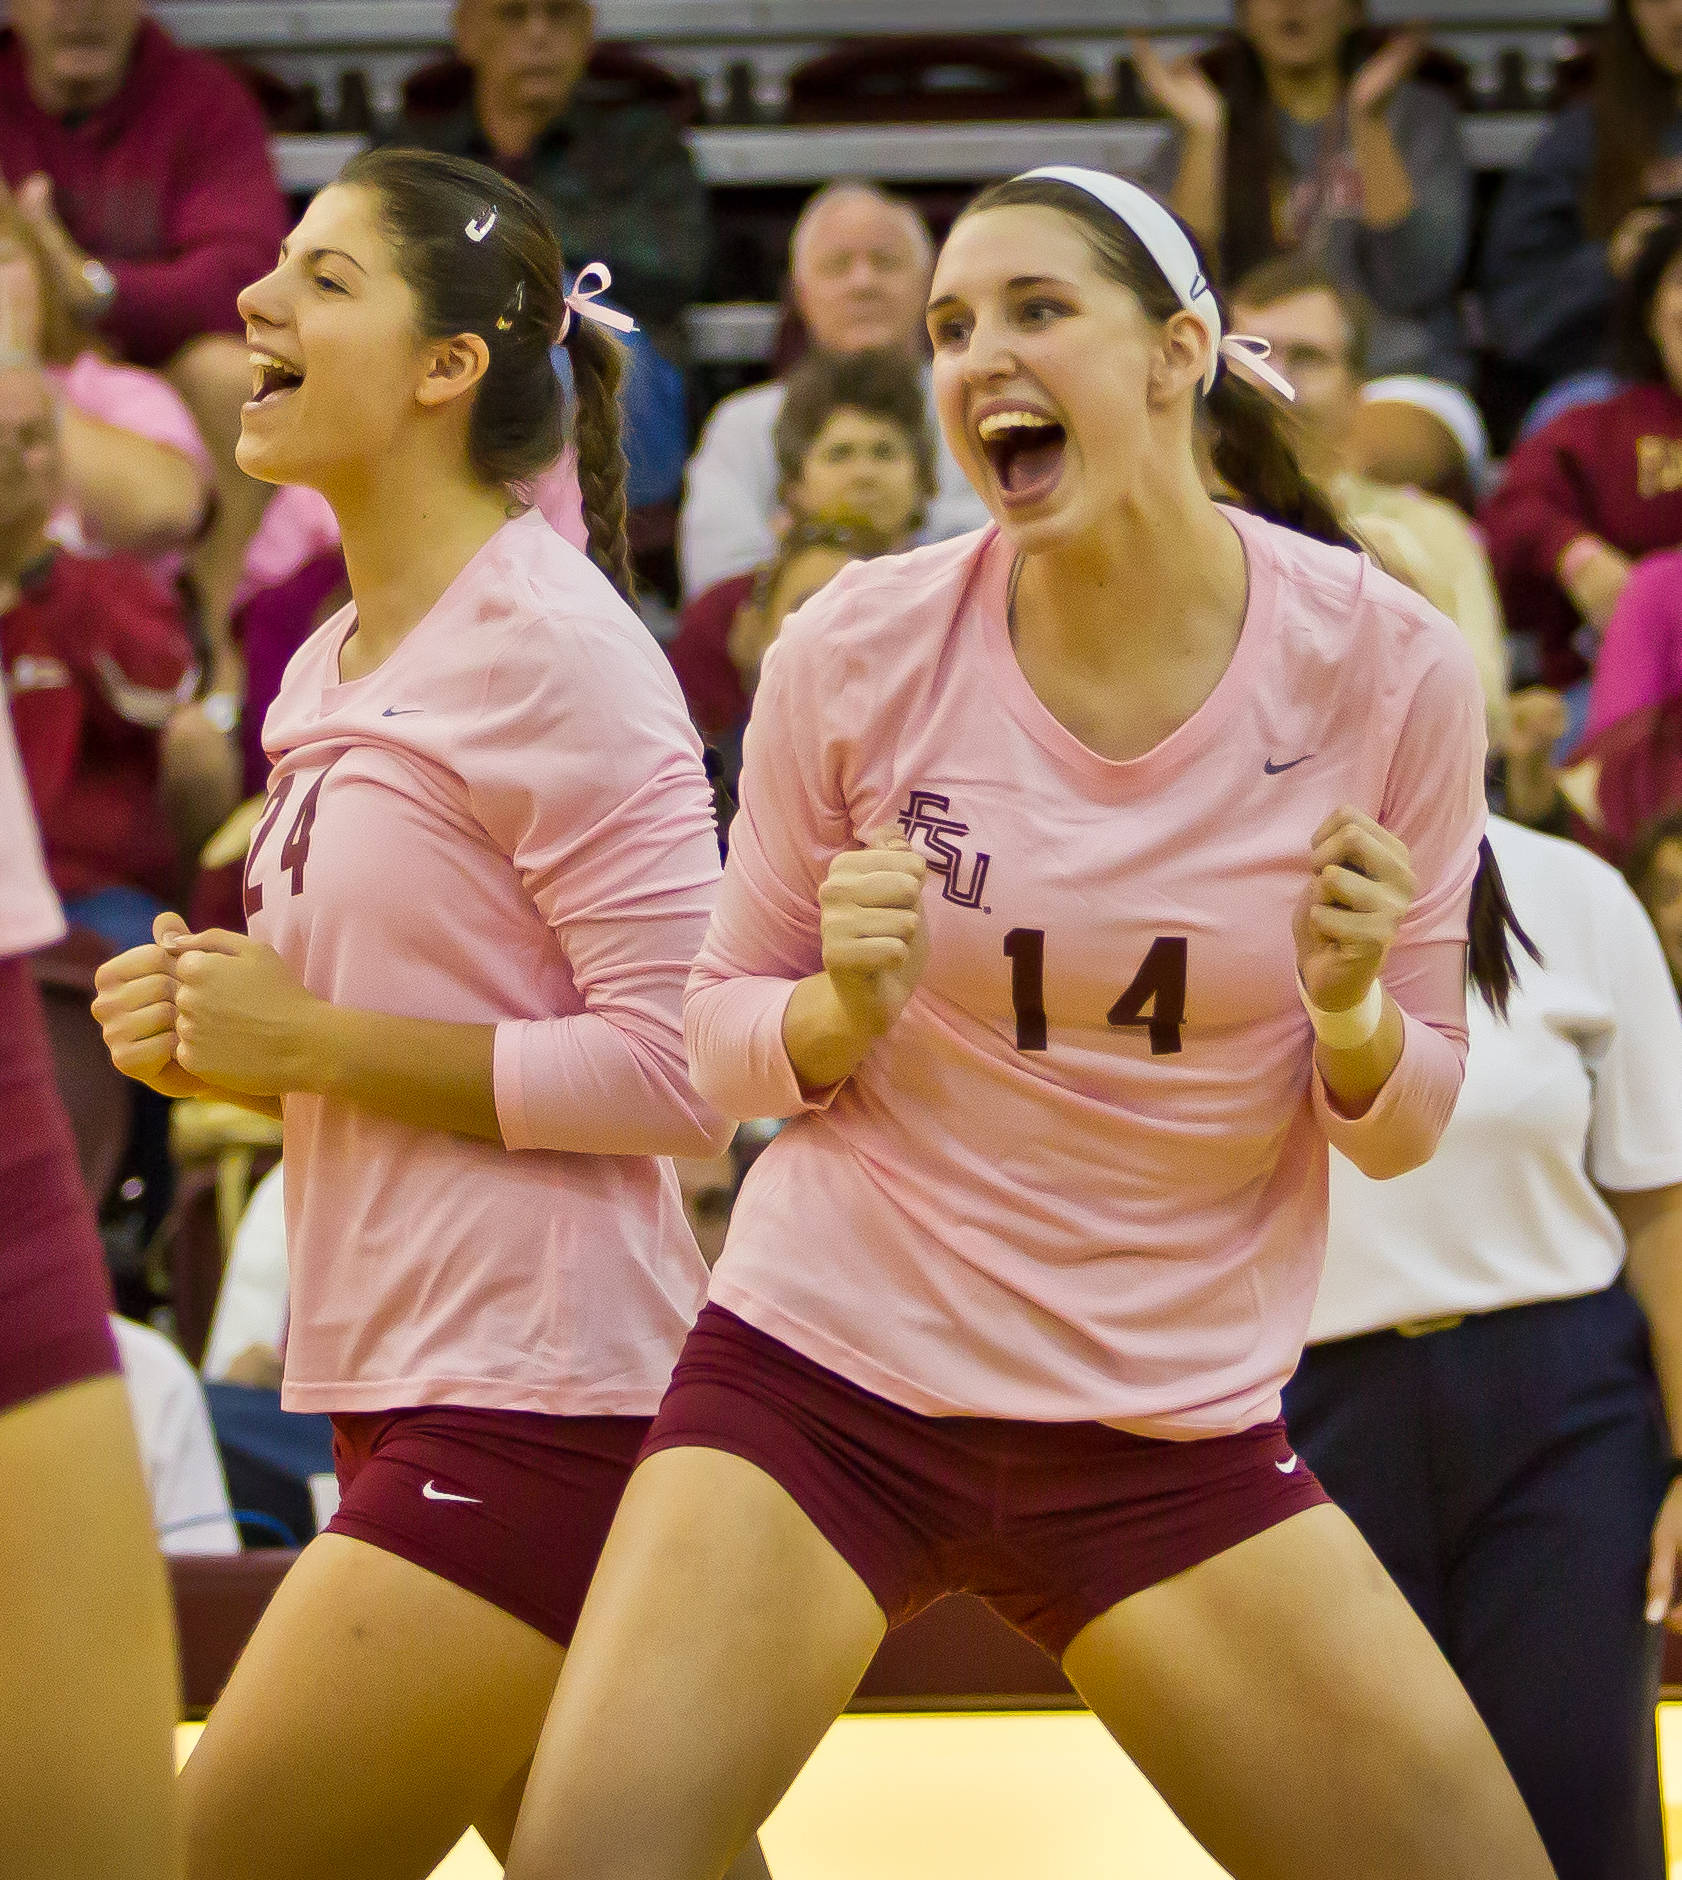 Olivera Medic (24) and Ashley Neff (14) celebrate a point.